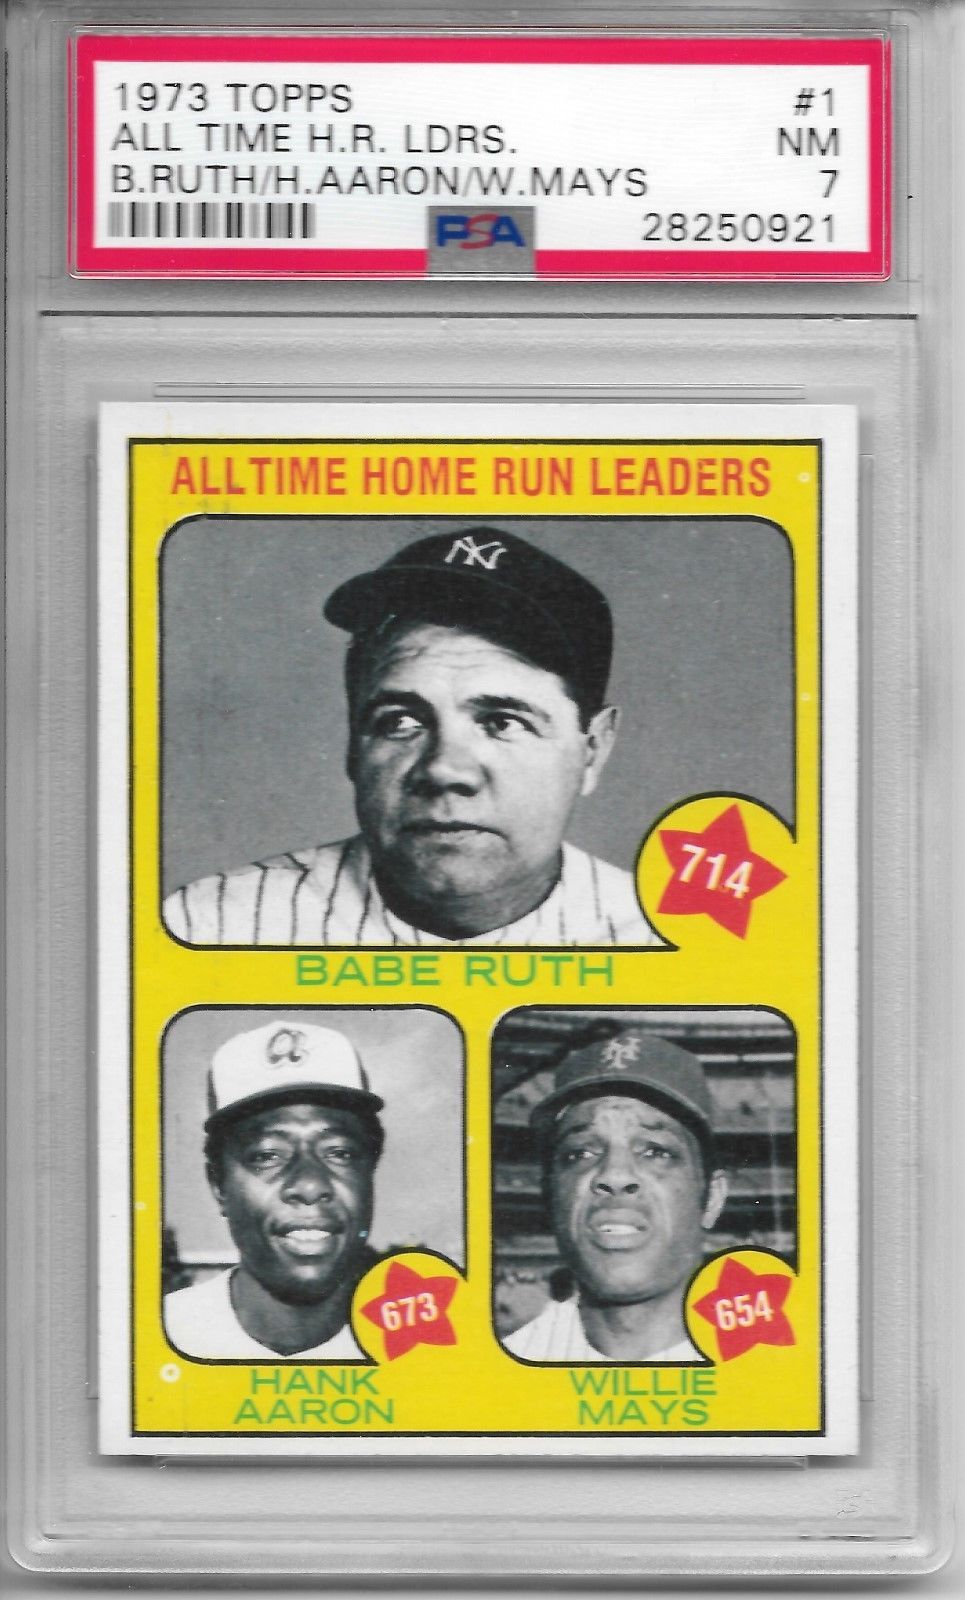 1973 Topps 1 All Time Home Run Leaders Babe Ruth Hank Aaron